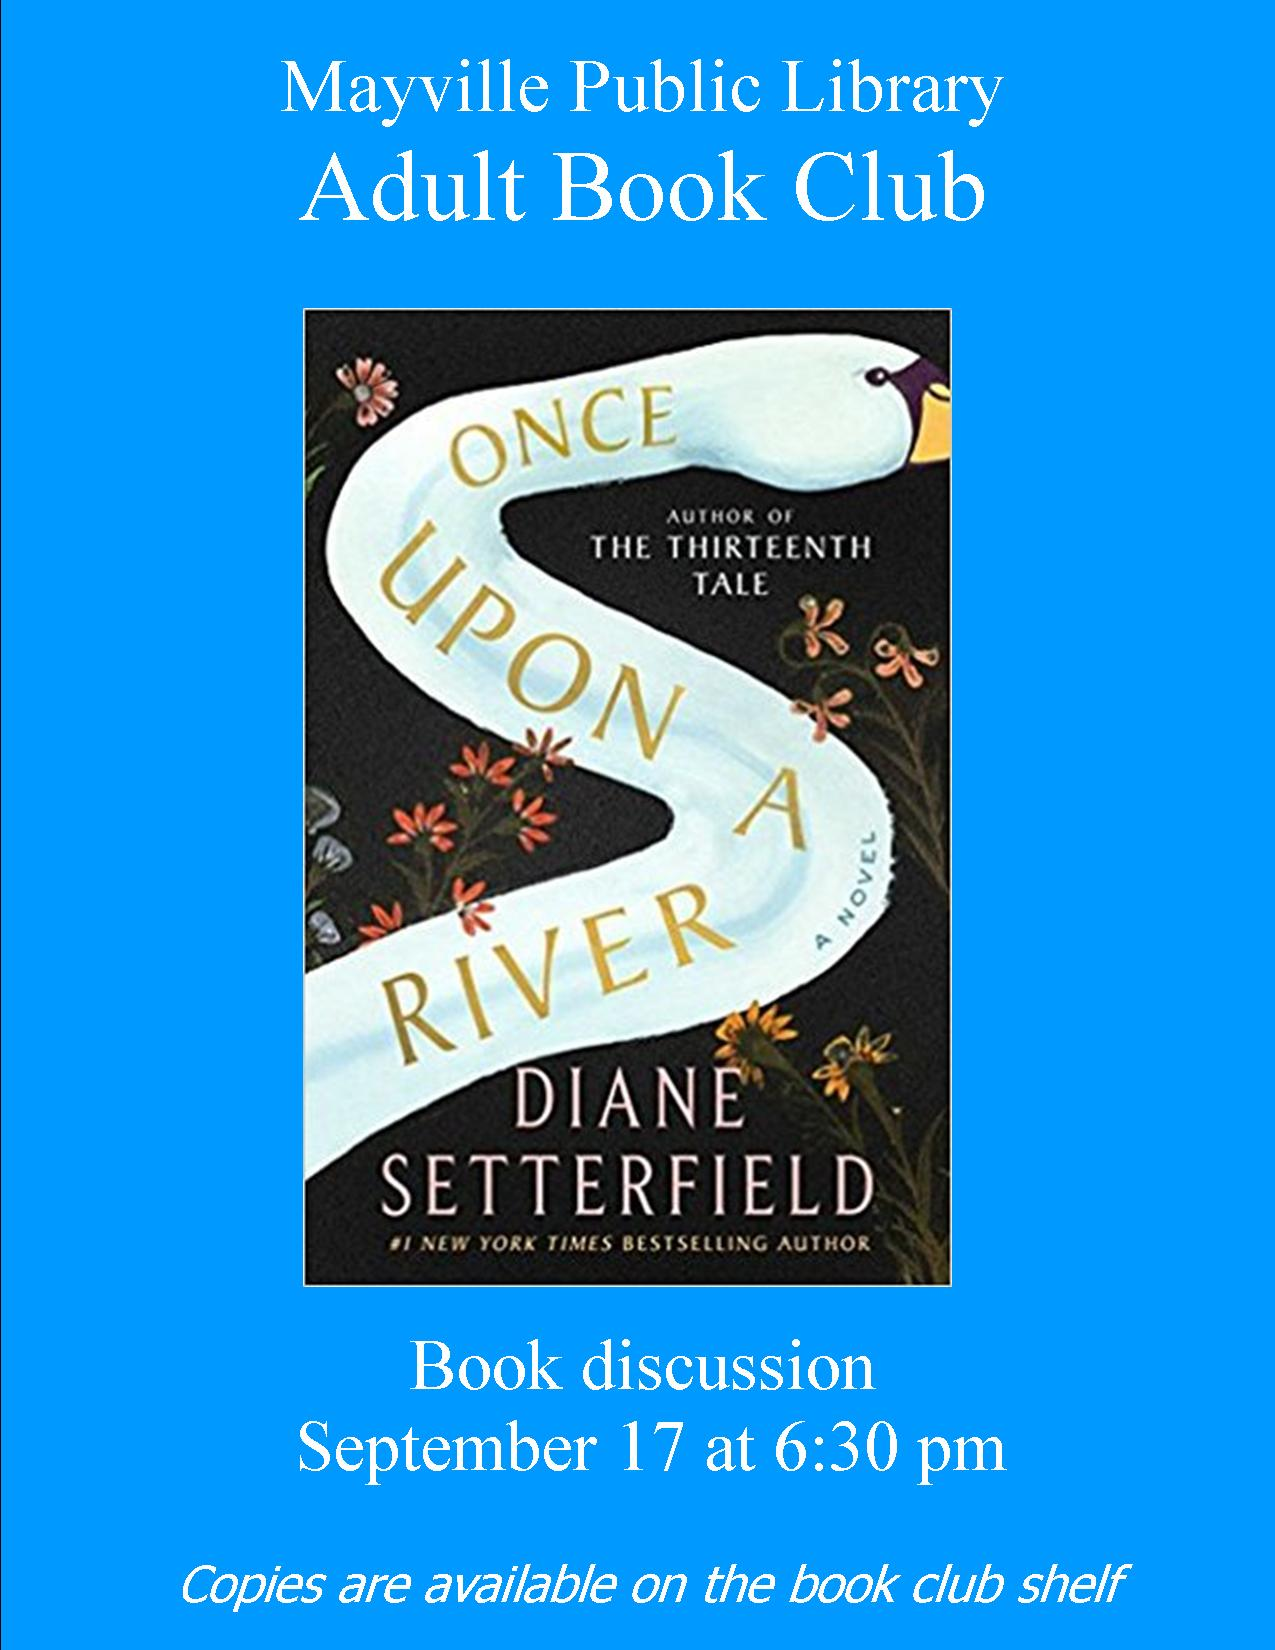 Adult Book Club @ Mayville Public Library